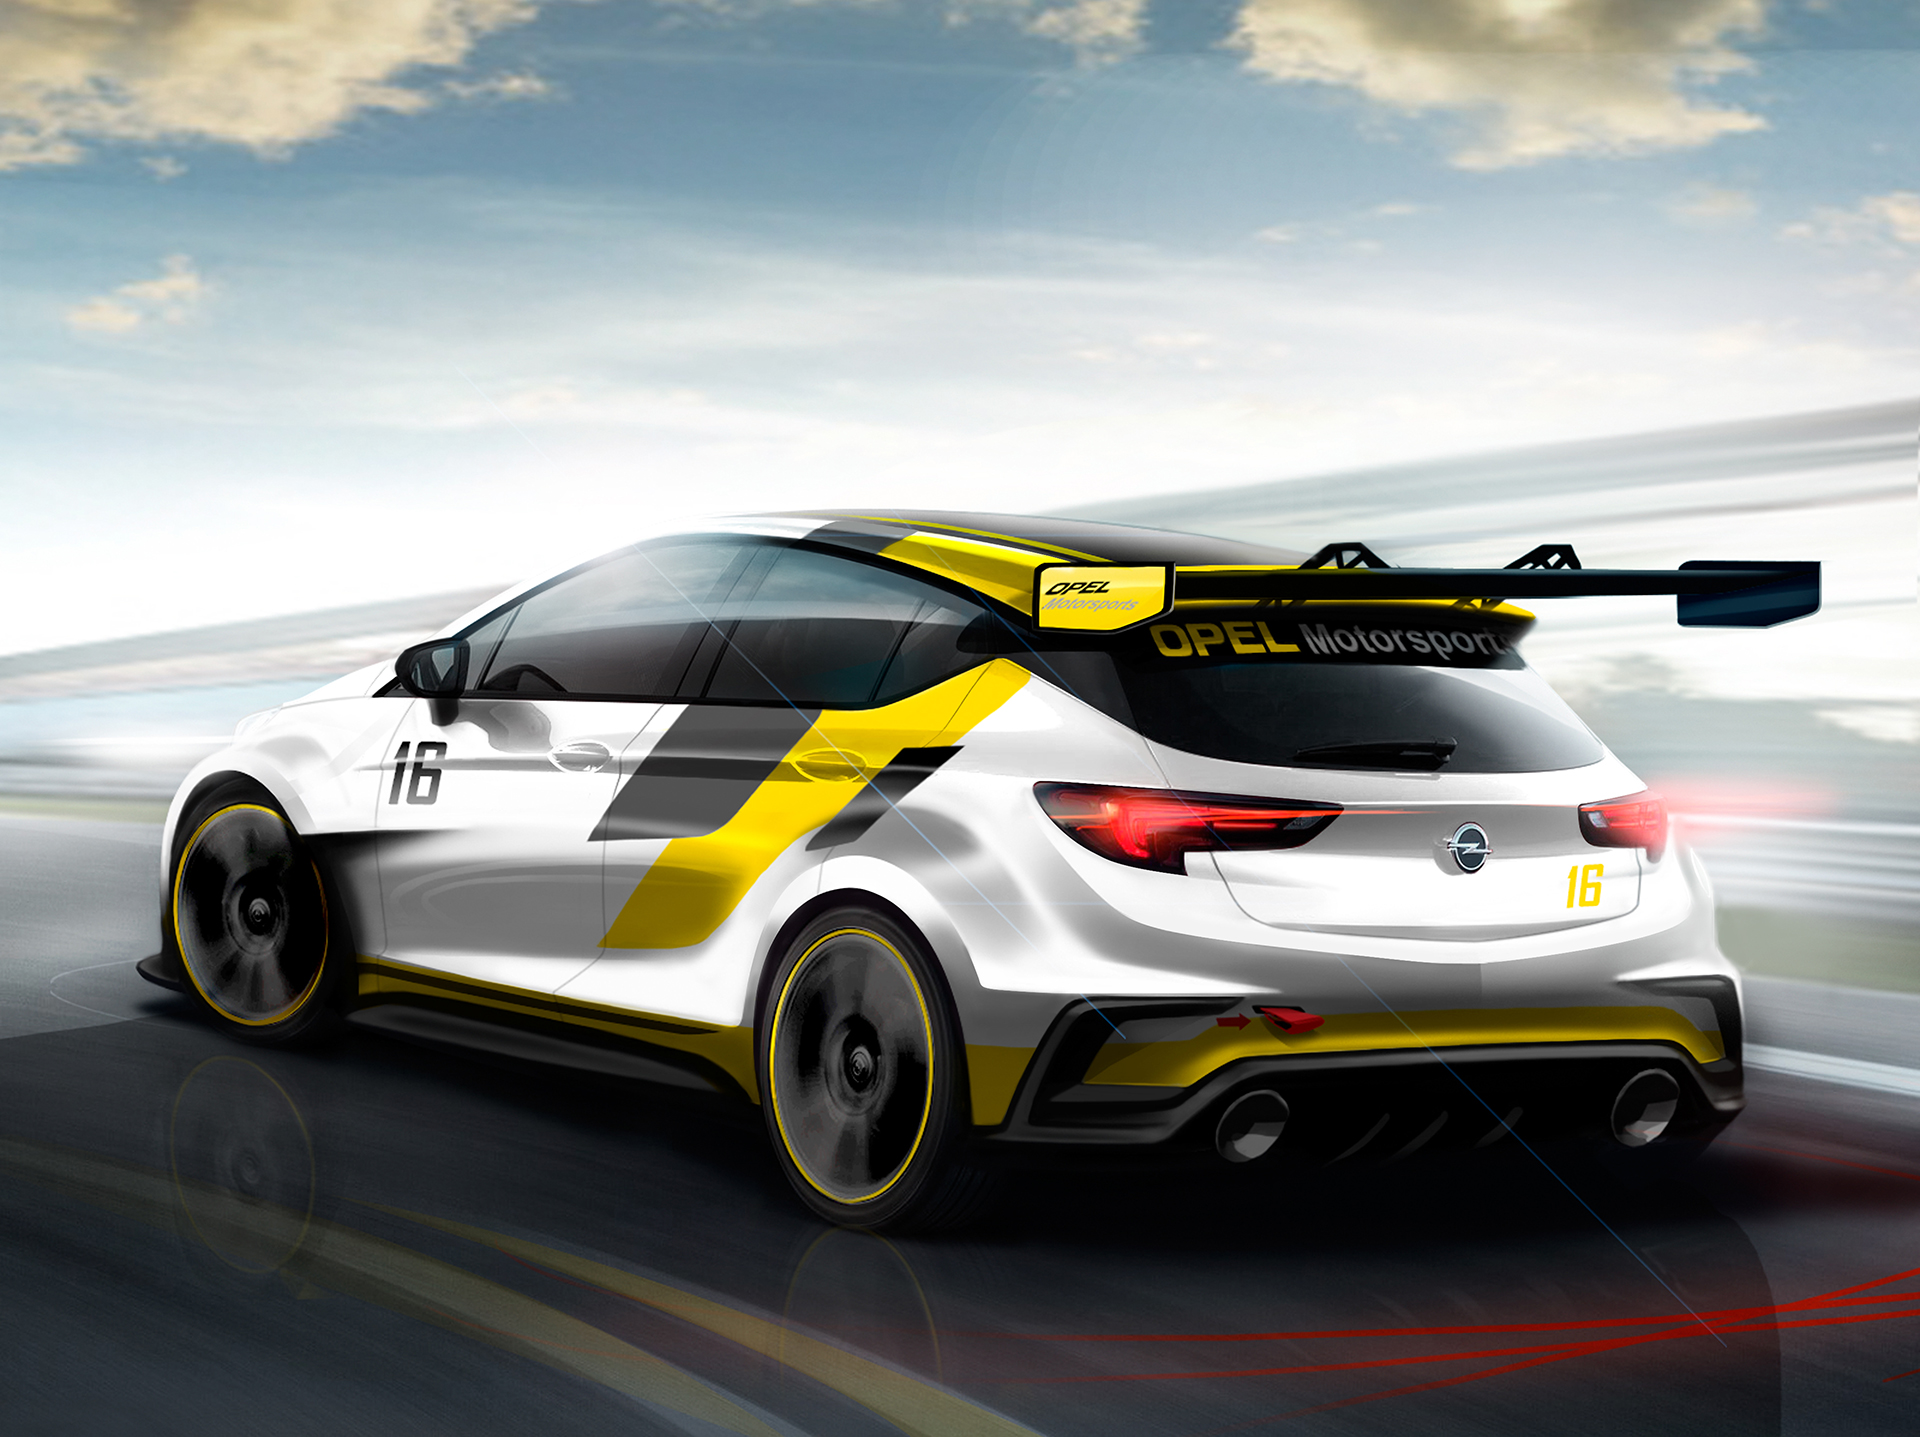 Opel Astra TCR - 2015 - sketch design - arrière / rear - Image - GM Company.